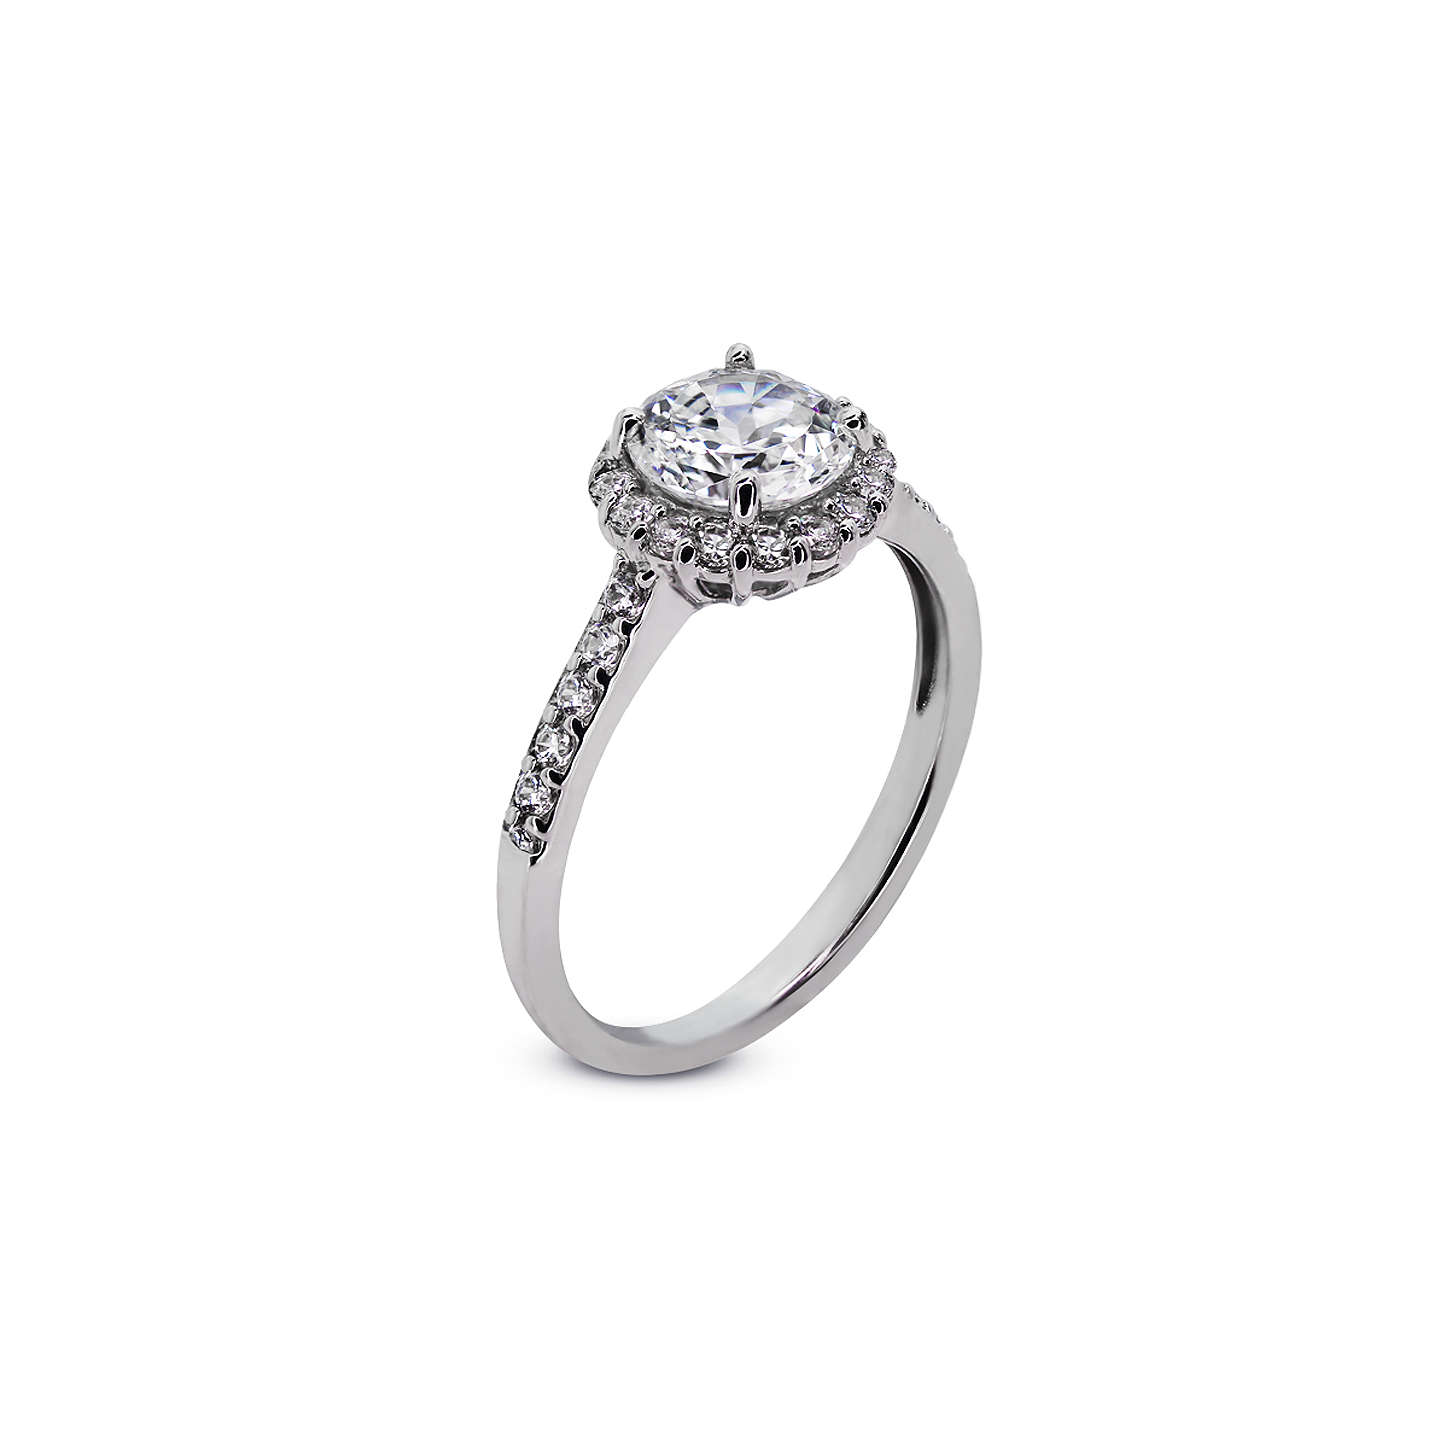 BuyCARAT* London Sterling Silver Round Engagement Ring, M, Silver Online at johnlewis.com